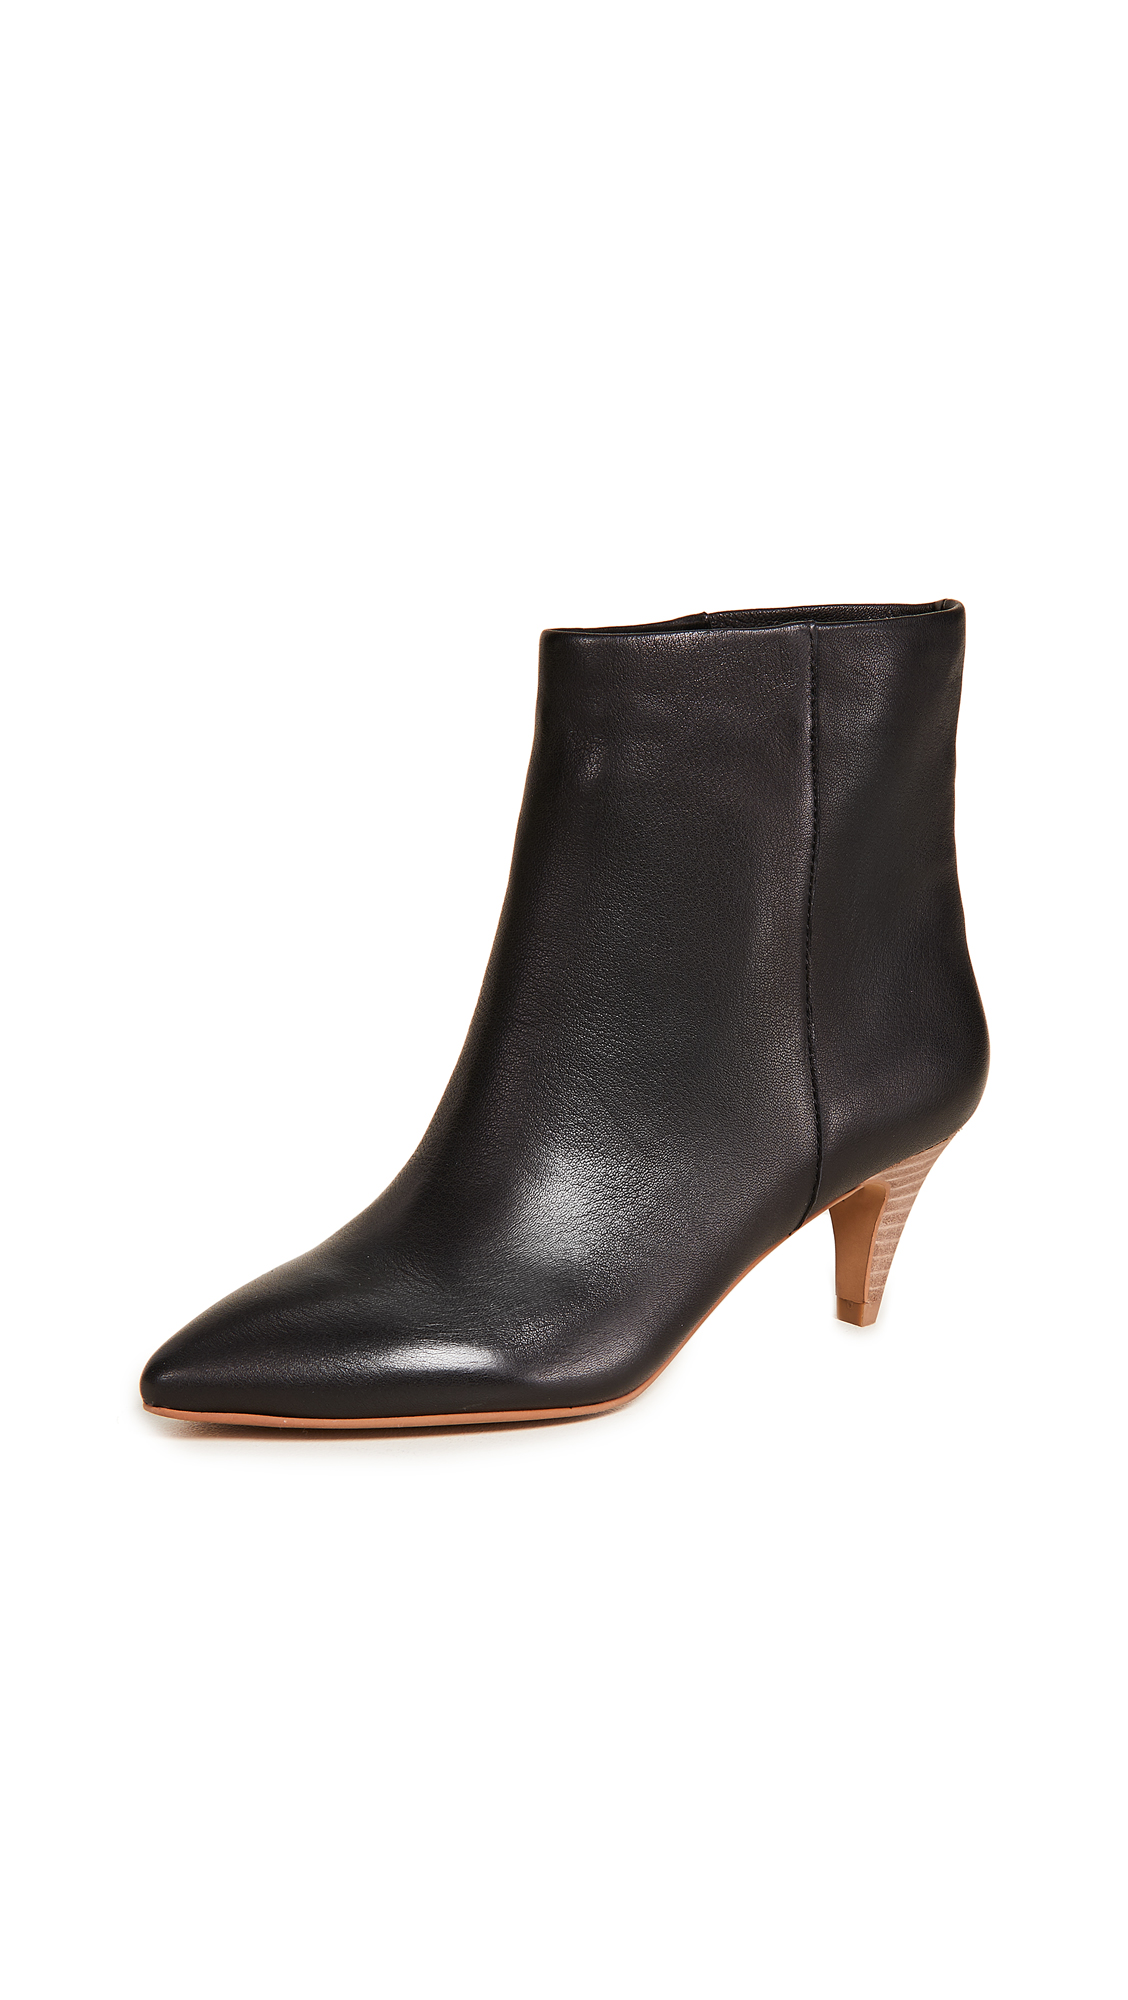 Dolce Vita Dee Dee Booties In Black